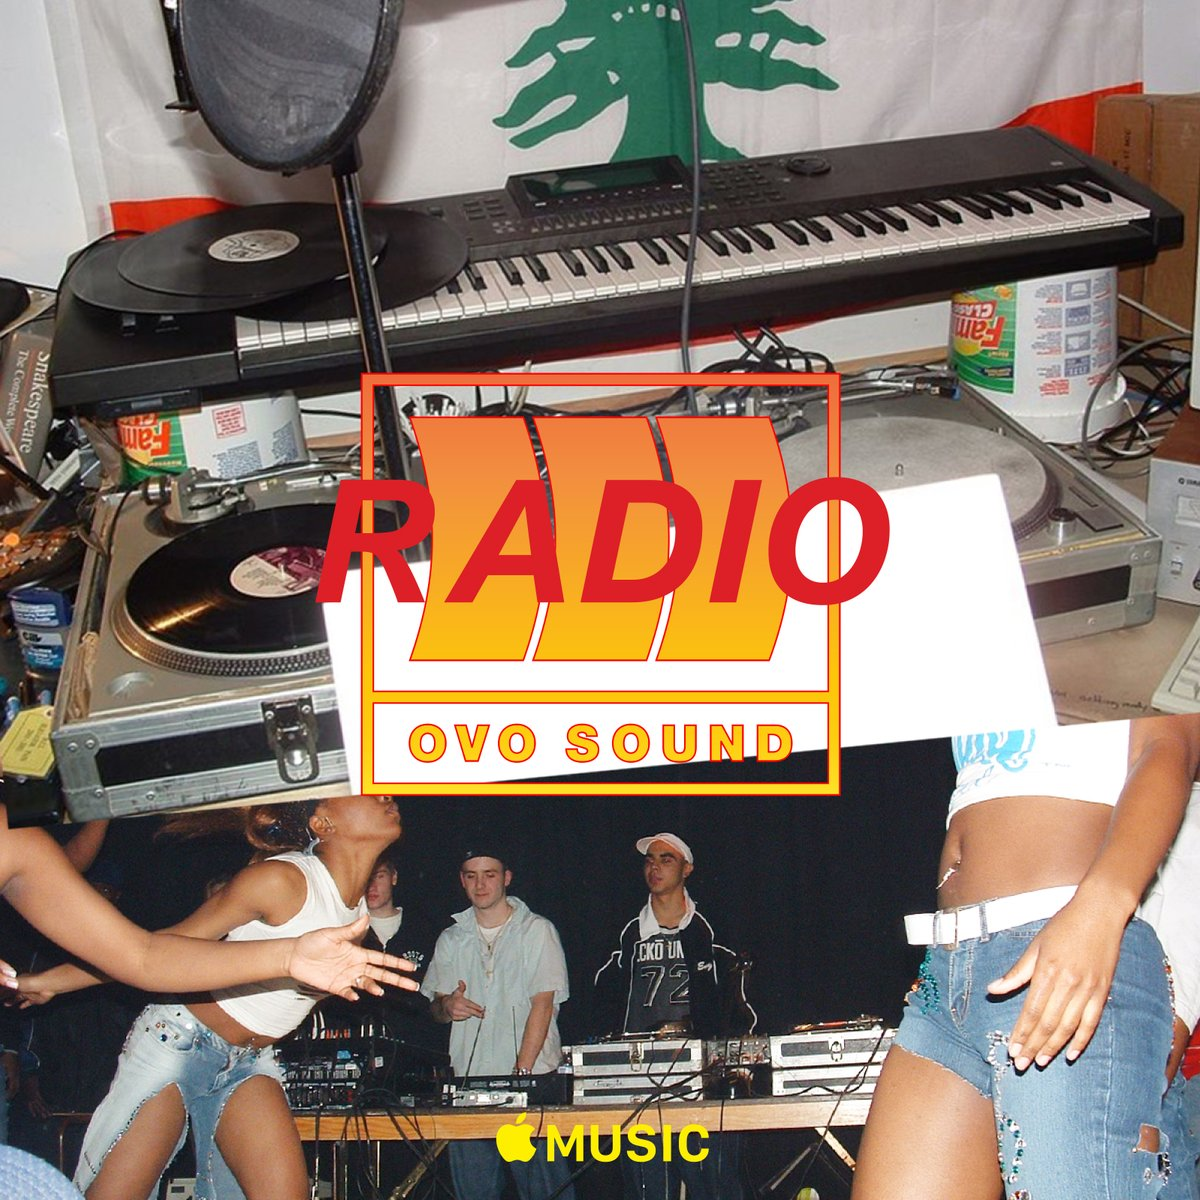 Tune into the 40th Episode of OVO Sound Radio Here